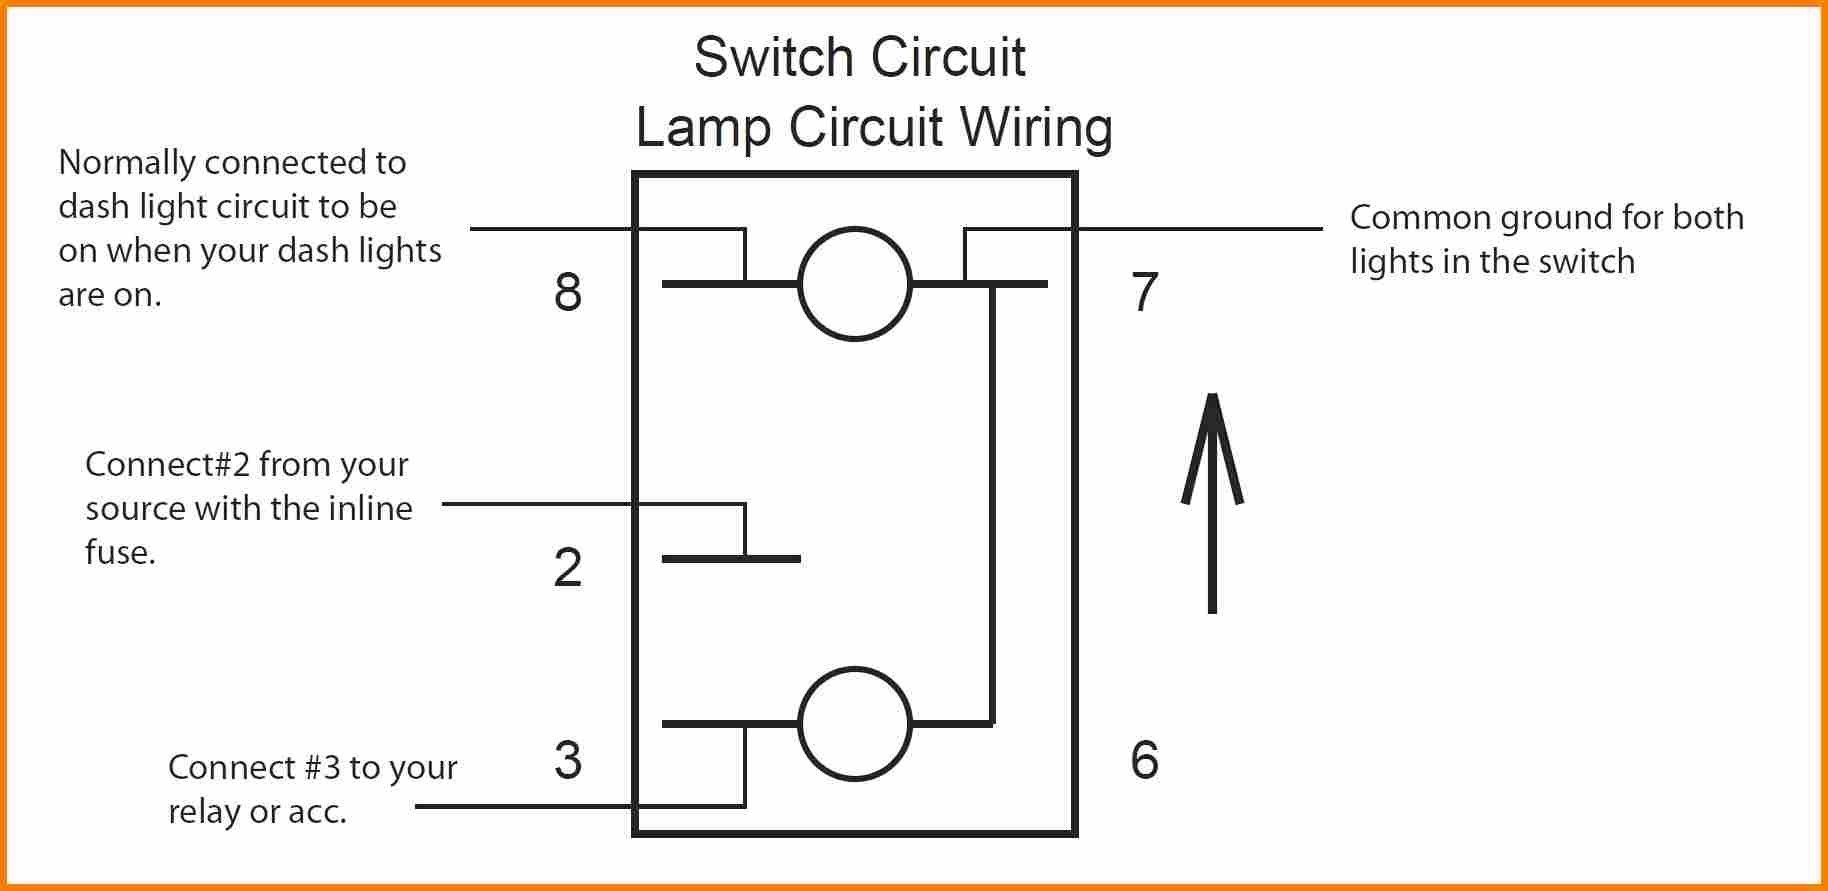 5 pin power window switch wiring diagram unique repair guides switch 6 pin  power window